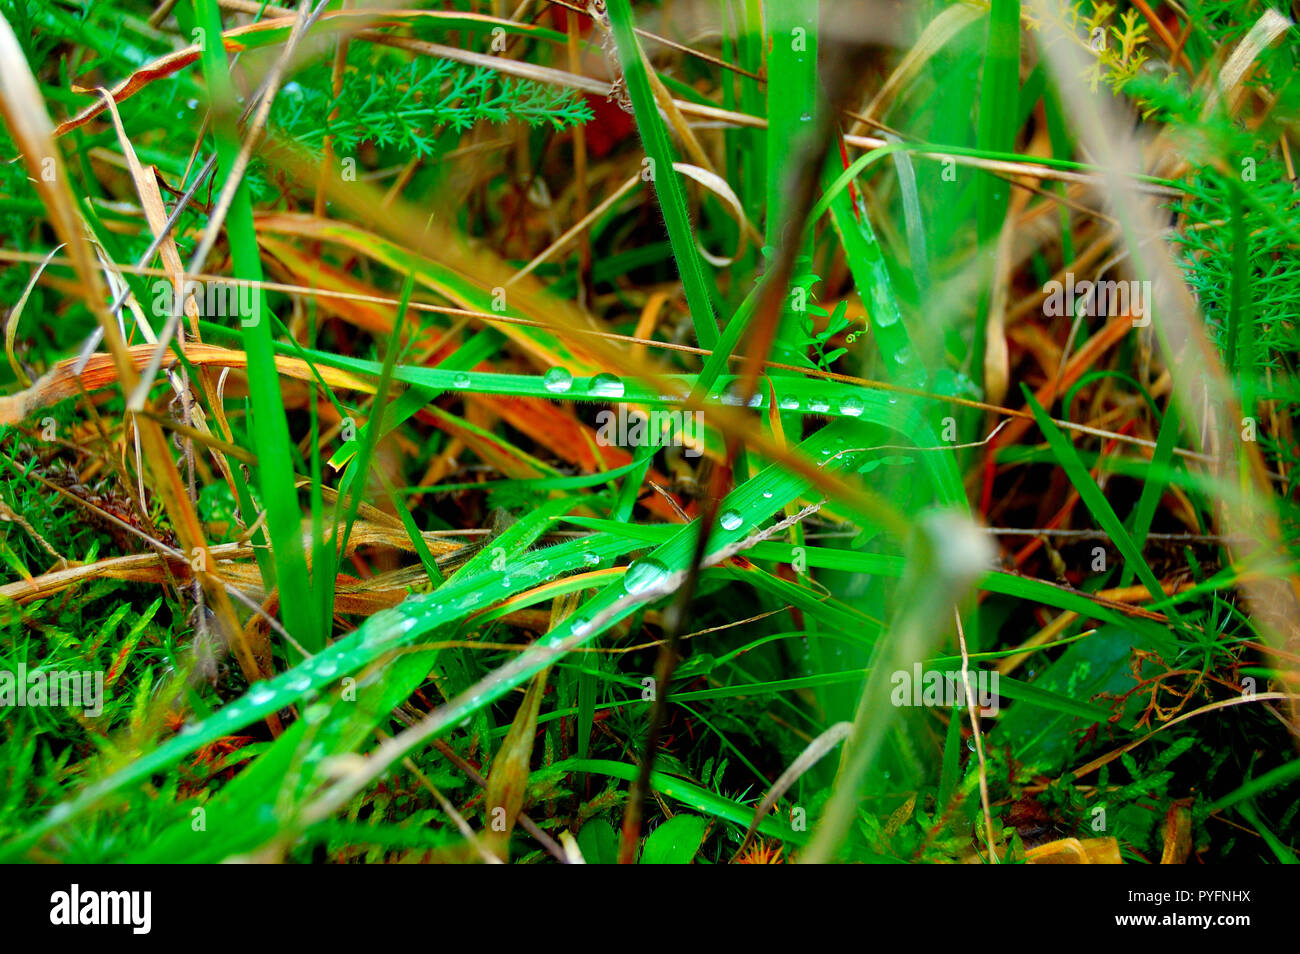 Drops of dew on the grass. - Stock Image